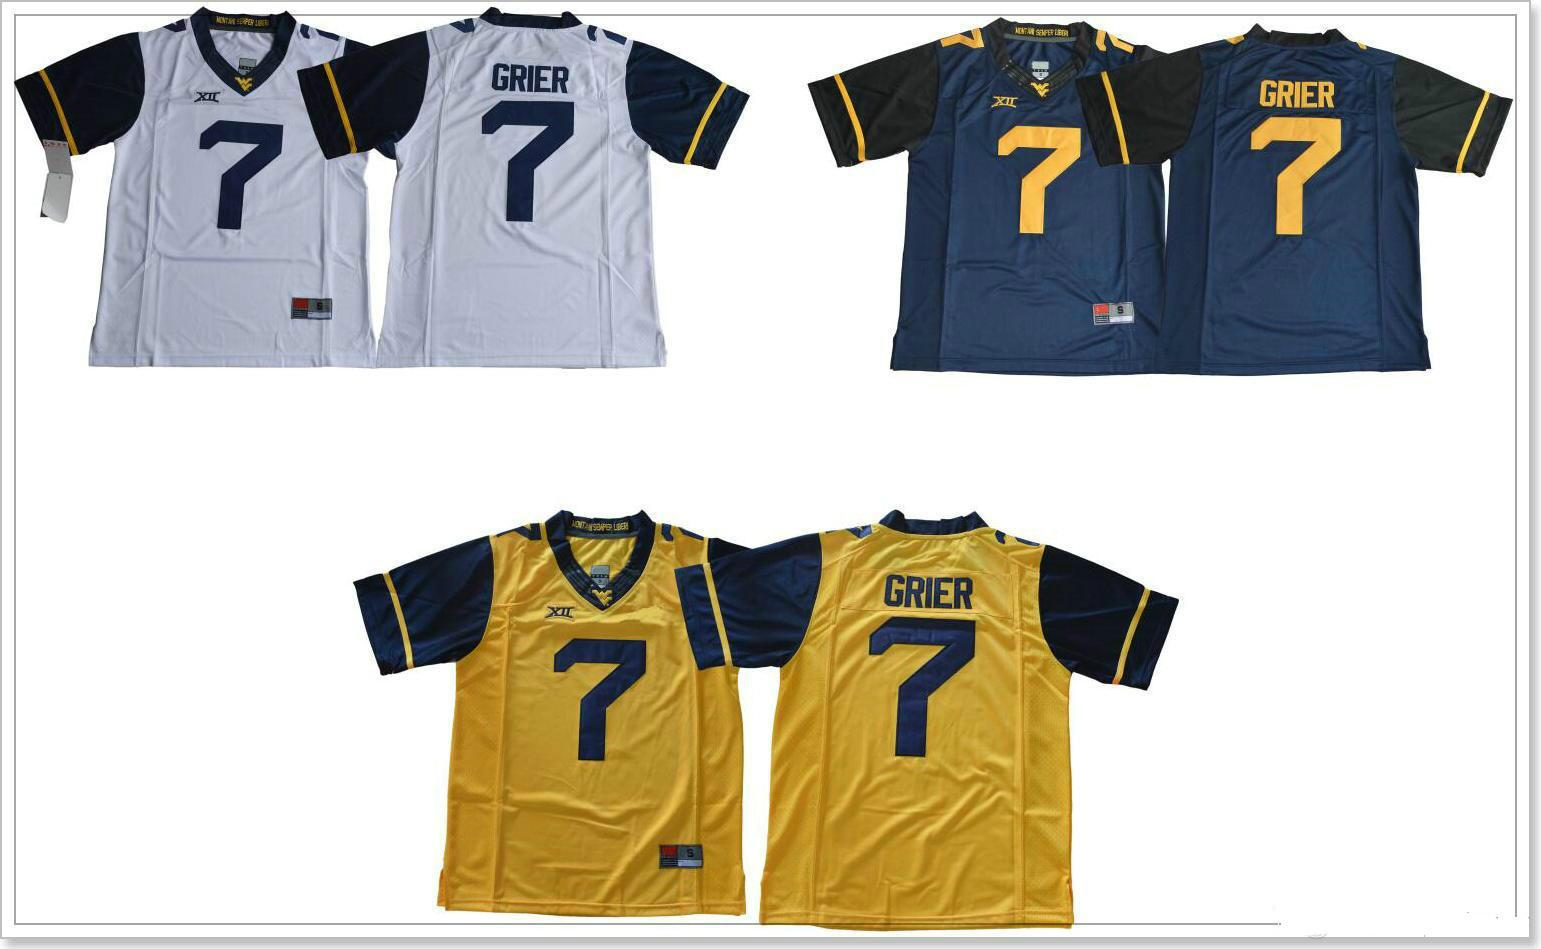 1f326eee0 West Virginia Mountaineers  7 Will Grier Mens Vintage College Team American  Football Pro Sports Jerseys Shirts Uniforms Stitched Embroidery Online with  ...